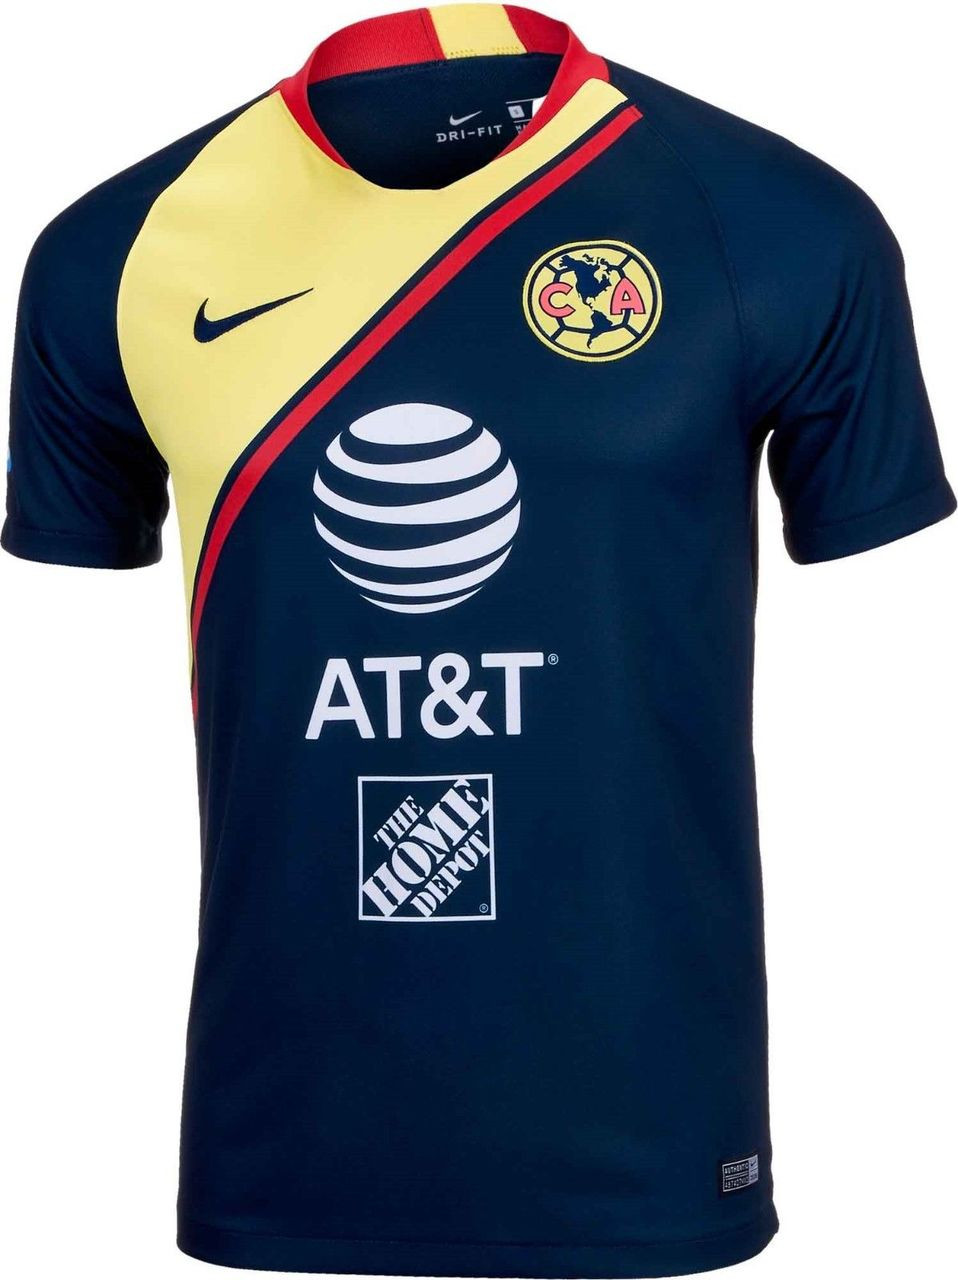 ad17e1730a1 NIKE CLUB AMERICA 2019 AWAY JERSEY - Soccer Plus